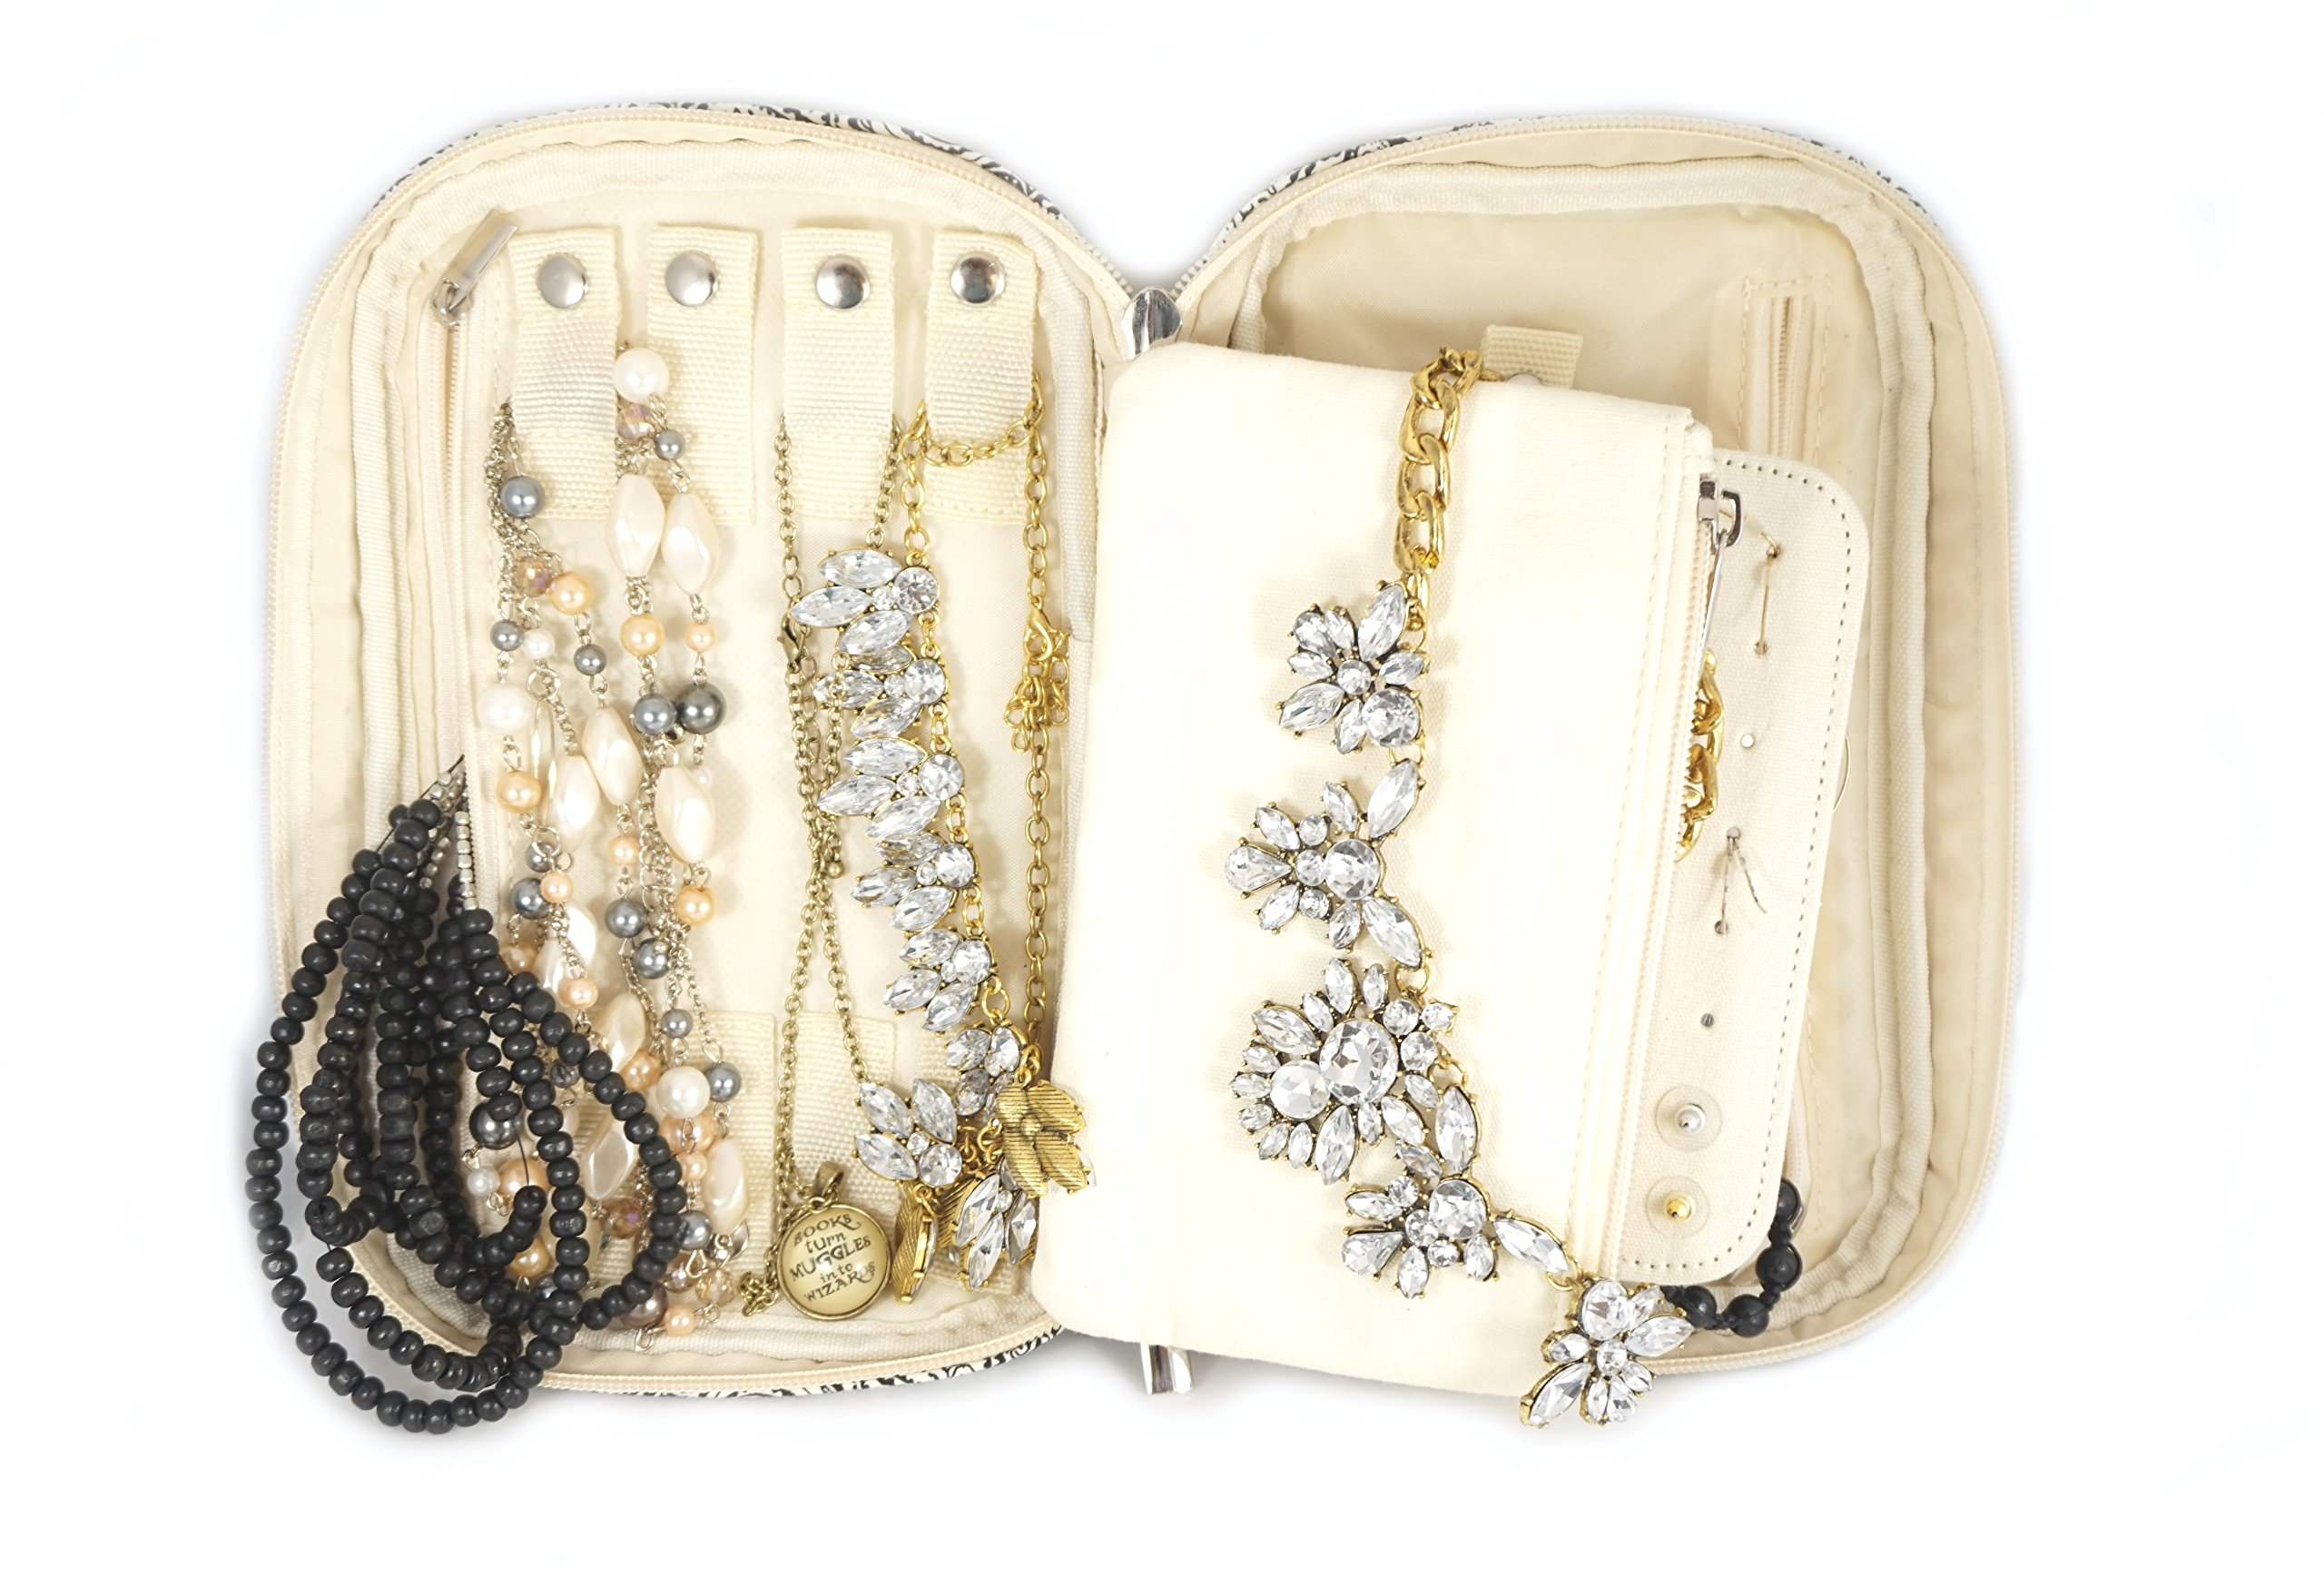 Jewelry & Accessories Travel Organizer Bag Case (Black) by Simple Accessories (Image #5)